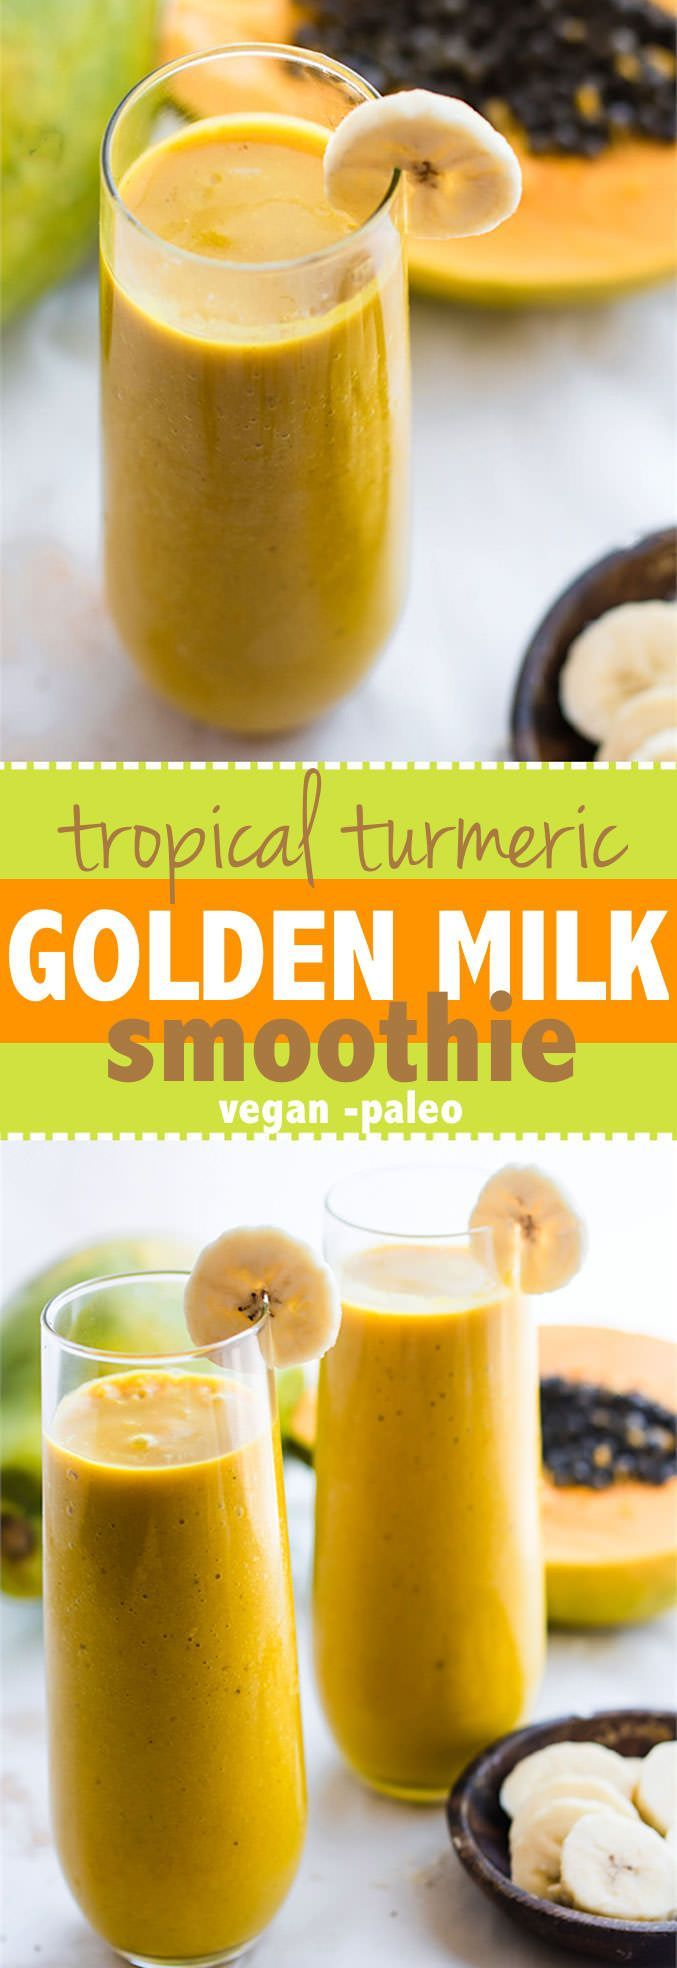 Tropical Turmeric Golden Milk Smoothie! A paleo and vegan friendly smoothie packed with Anti-inflammatory boosting nutrients, fiber, healthy fats, and a whole lotta goodness! Easy to make for a healthy breakfast or anytime. @Lindsay - Cotter Crunch